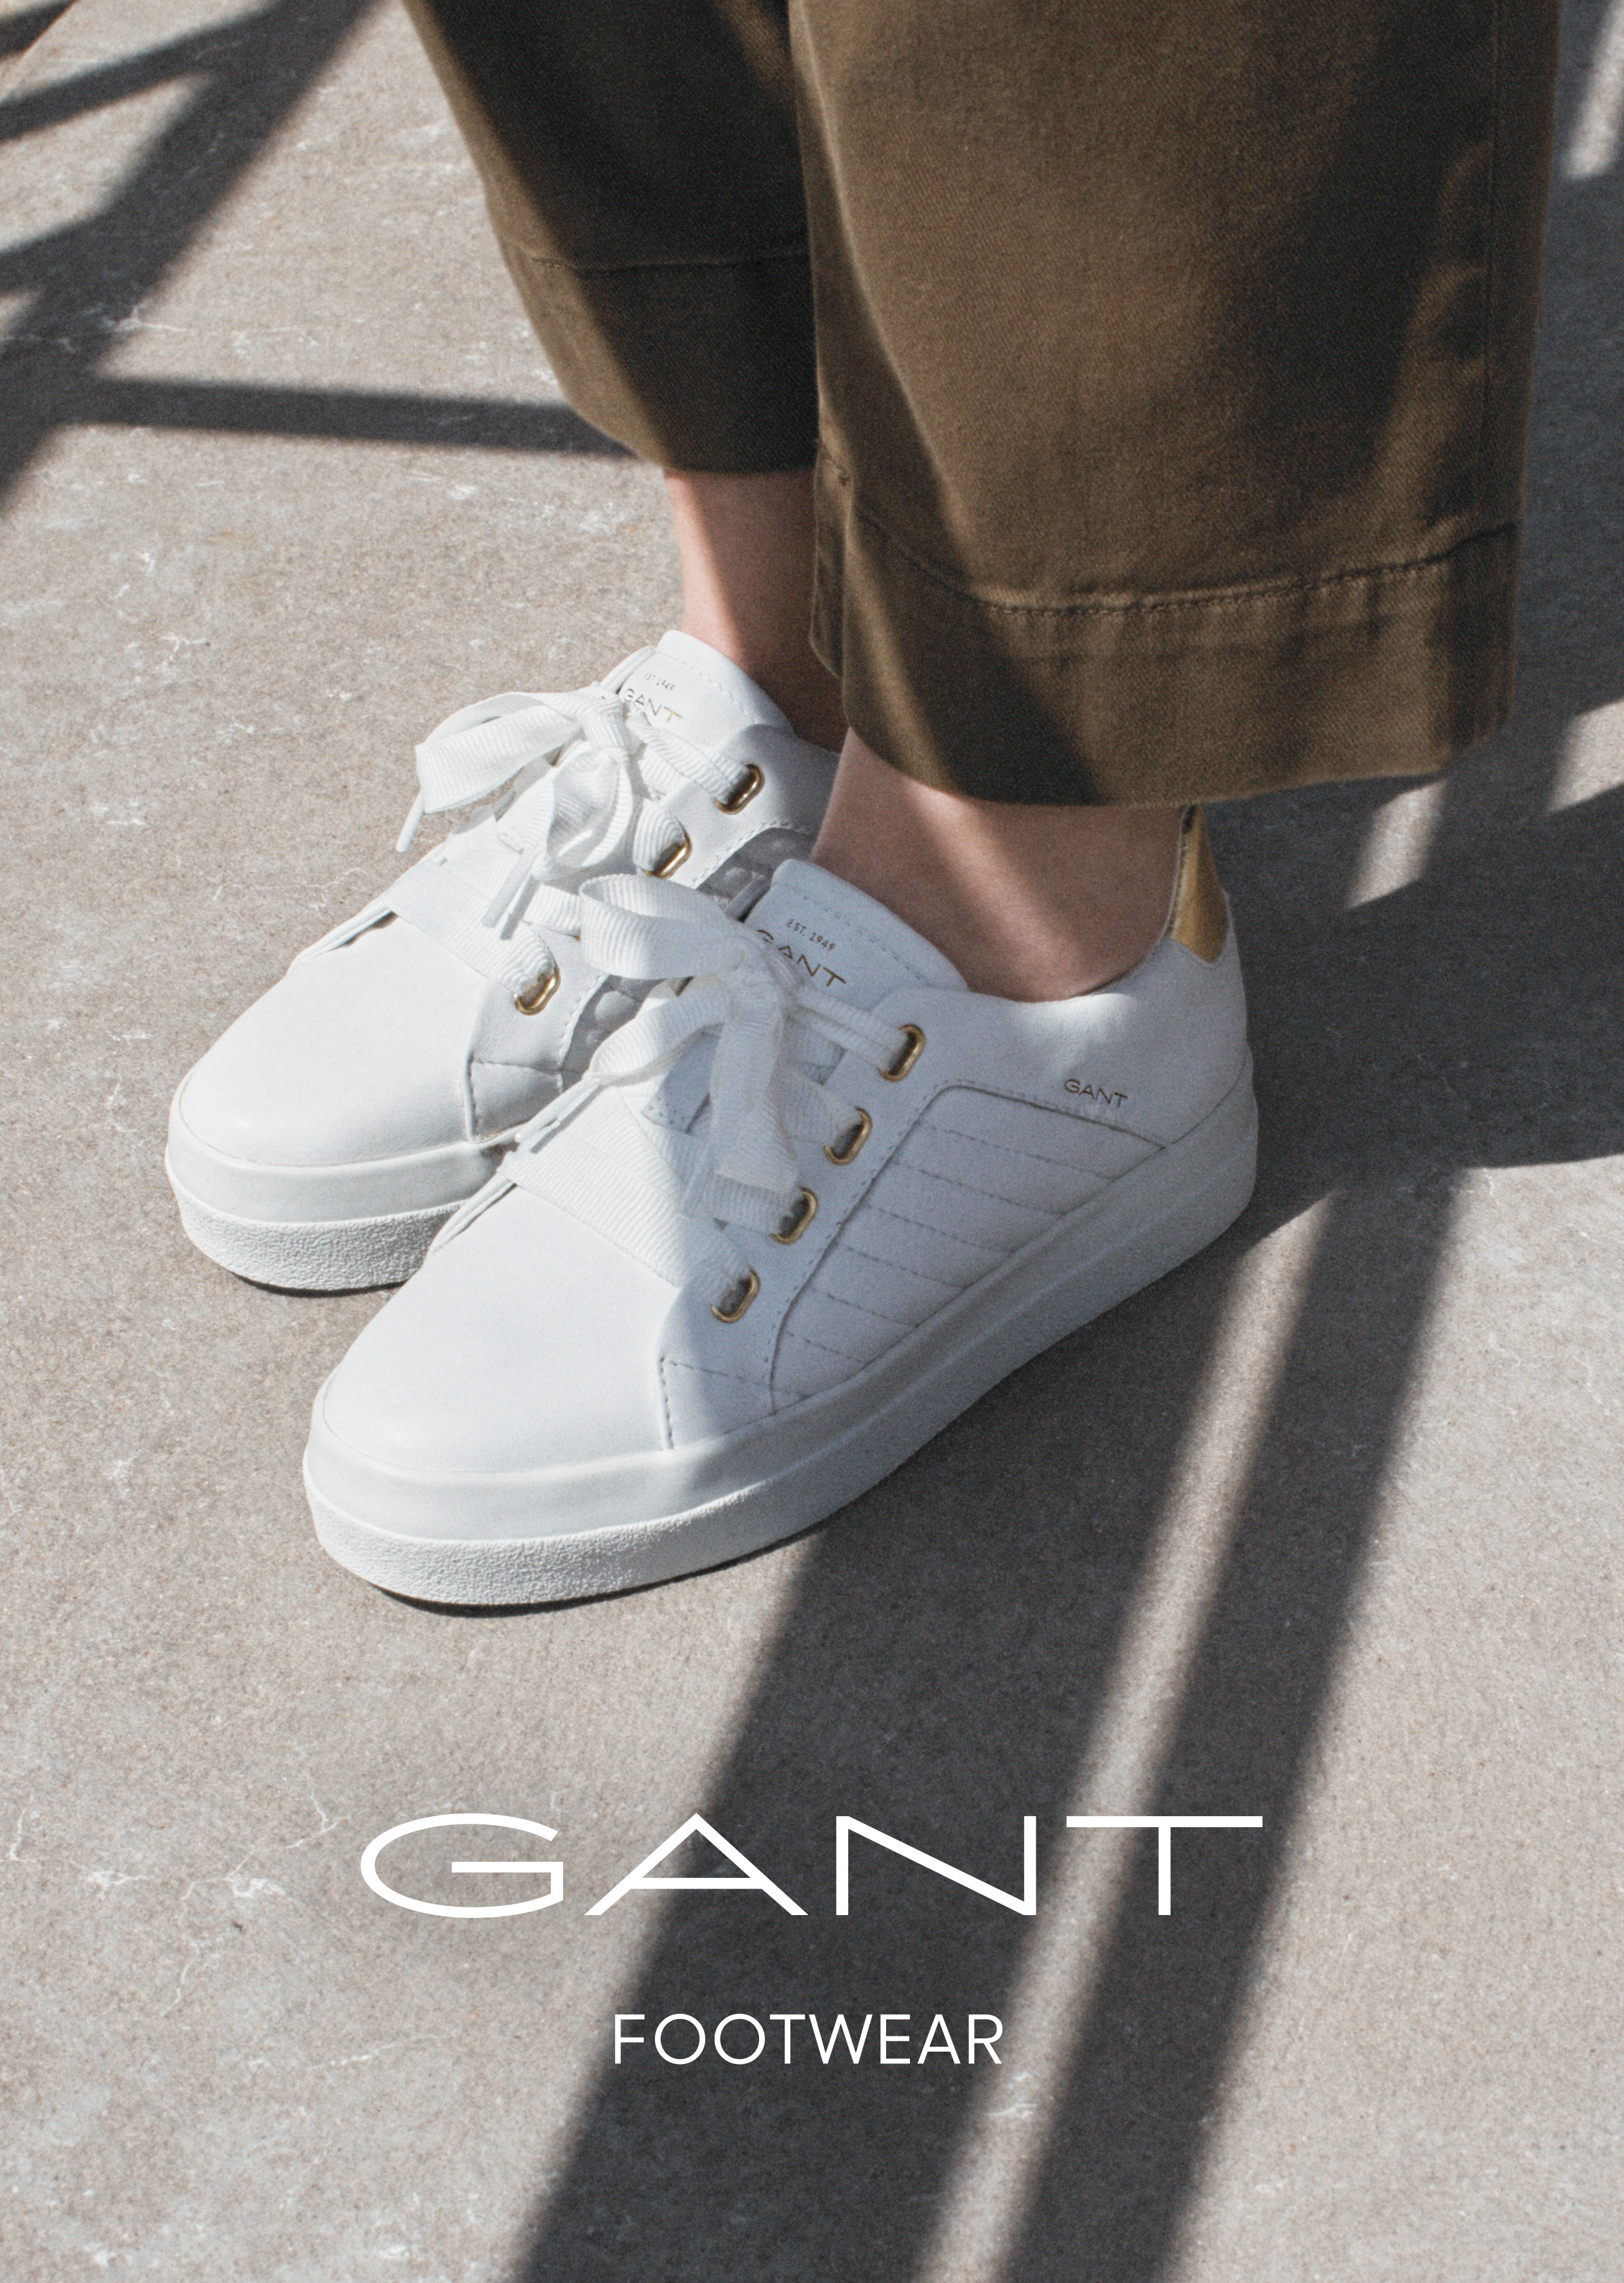 Gant_Office_Shoes_Srbija_aw20_I_A